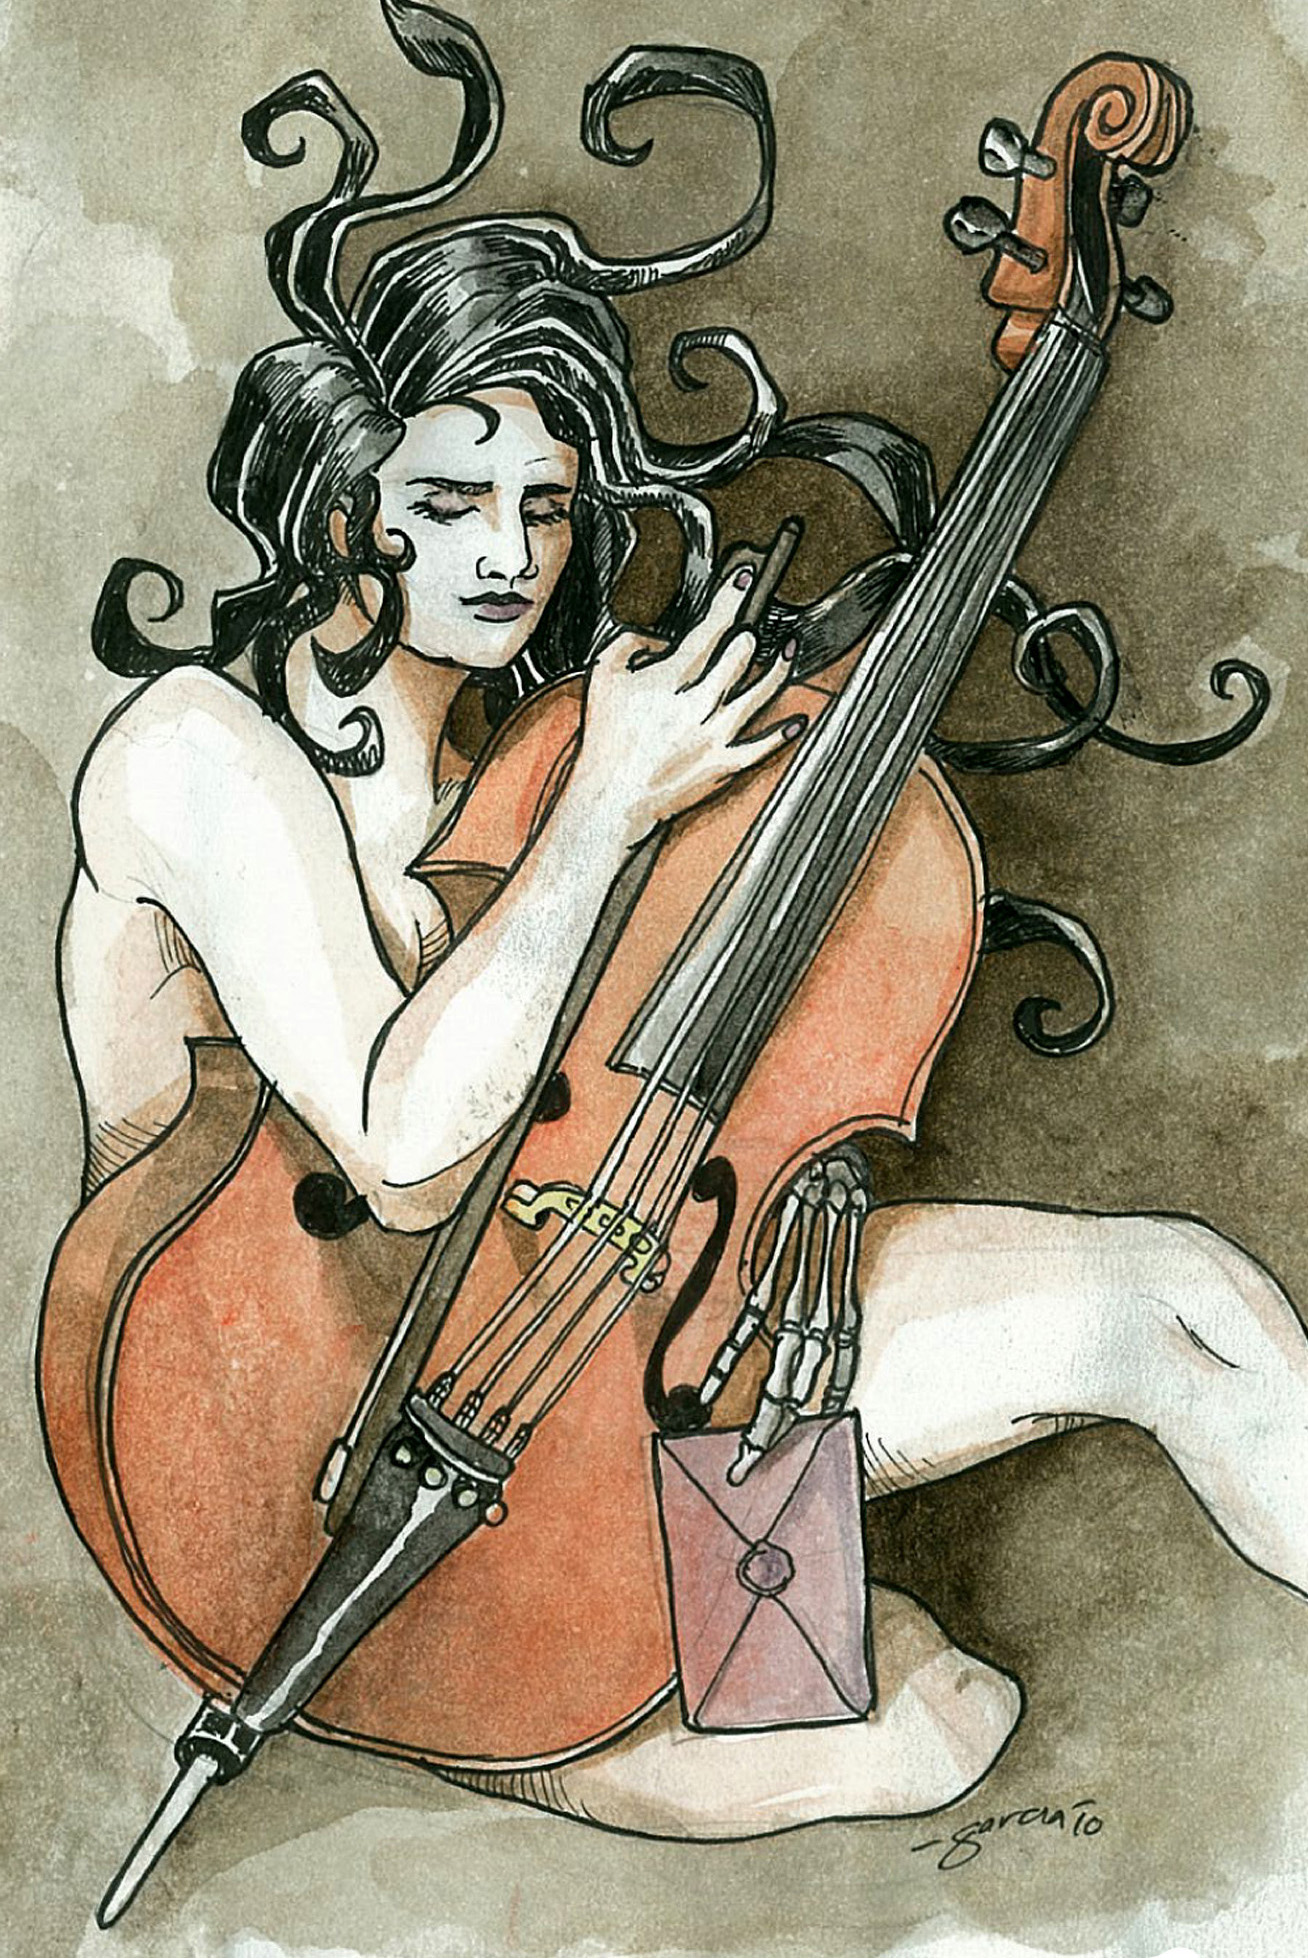 Daniel Garcia Art Illustration Intermitencias da Morte Saramago Death Cello